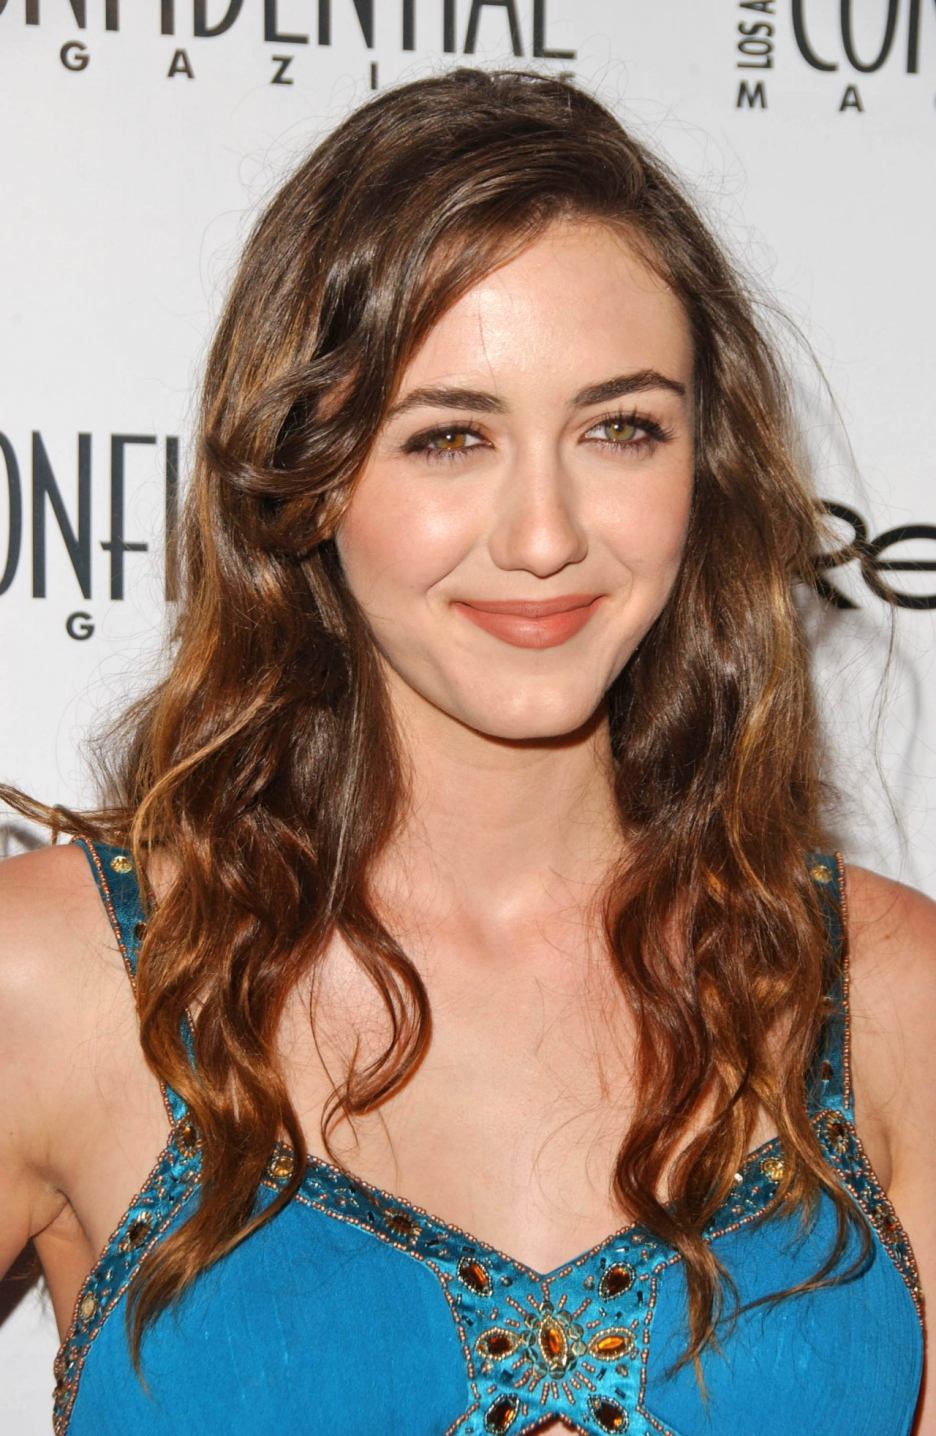 Madeline Zima earned a  million dollar salary, leaving the net worth at 1.5 million in 2017